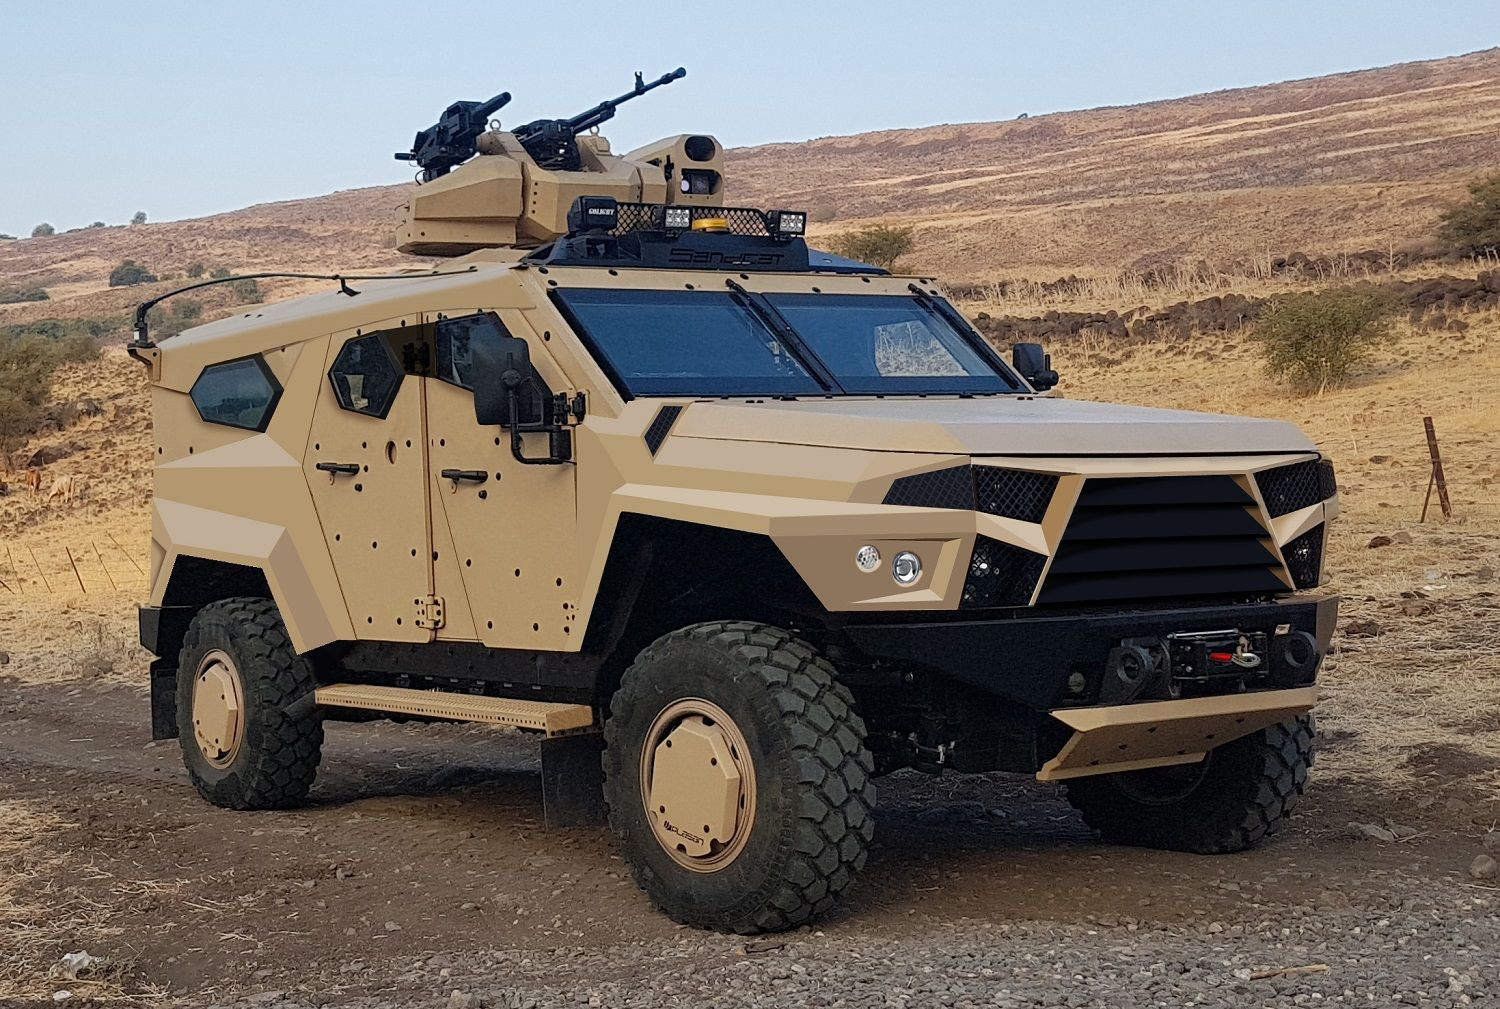 The new StormRider is built around the same rugged Ford components as the SandCat family. (Photo: Plasan)